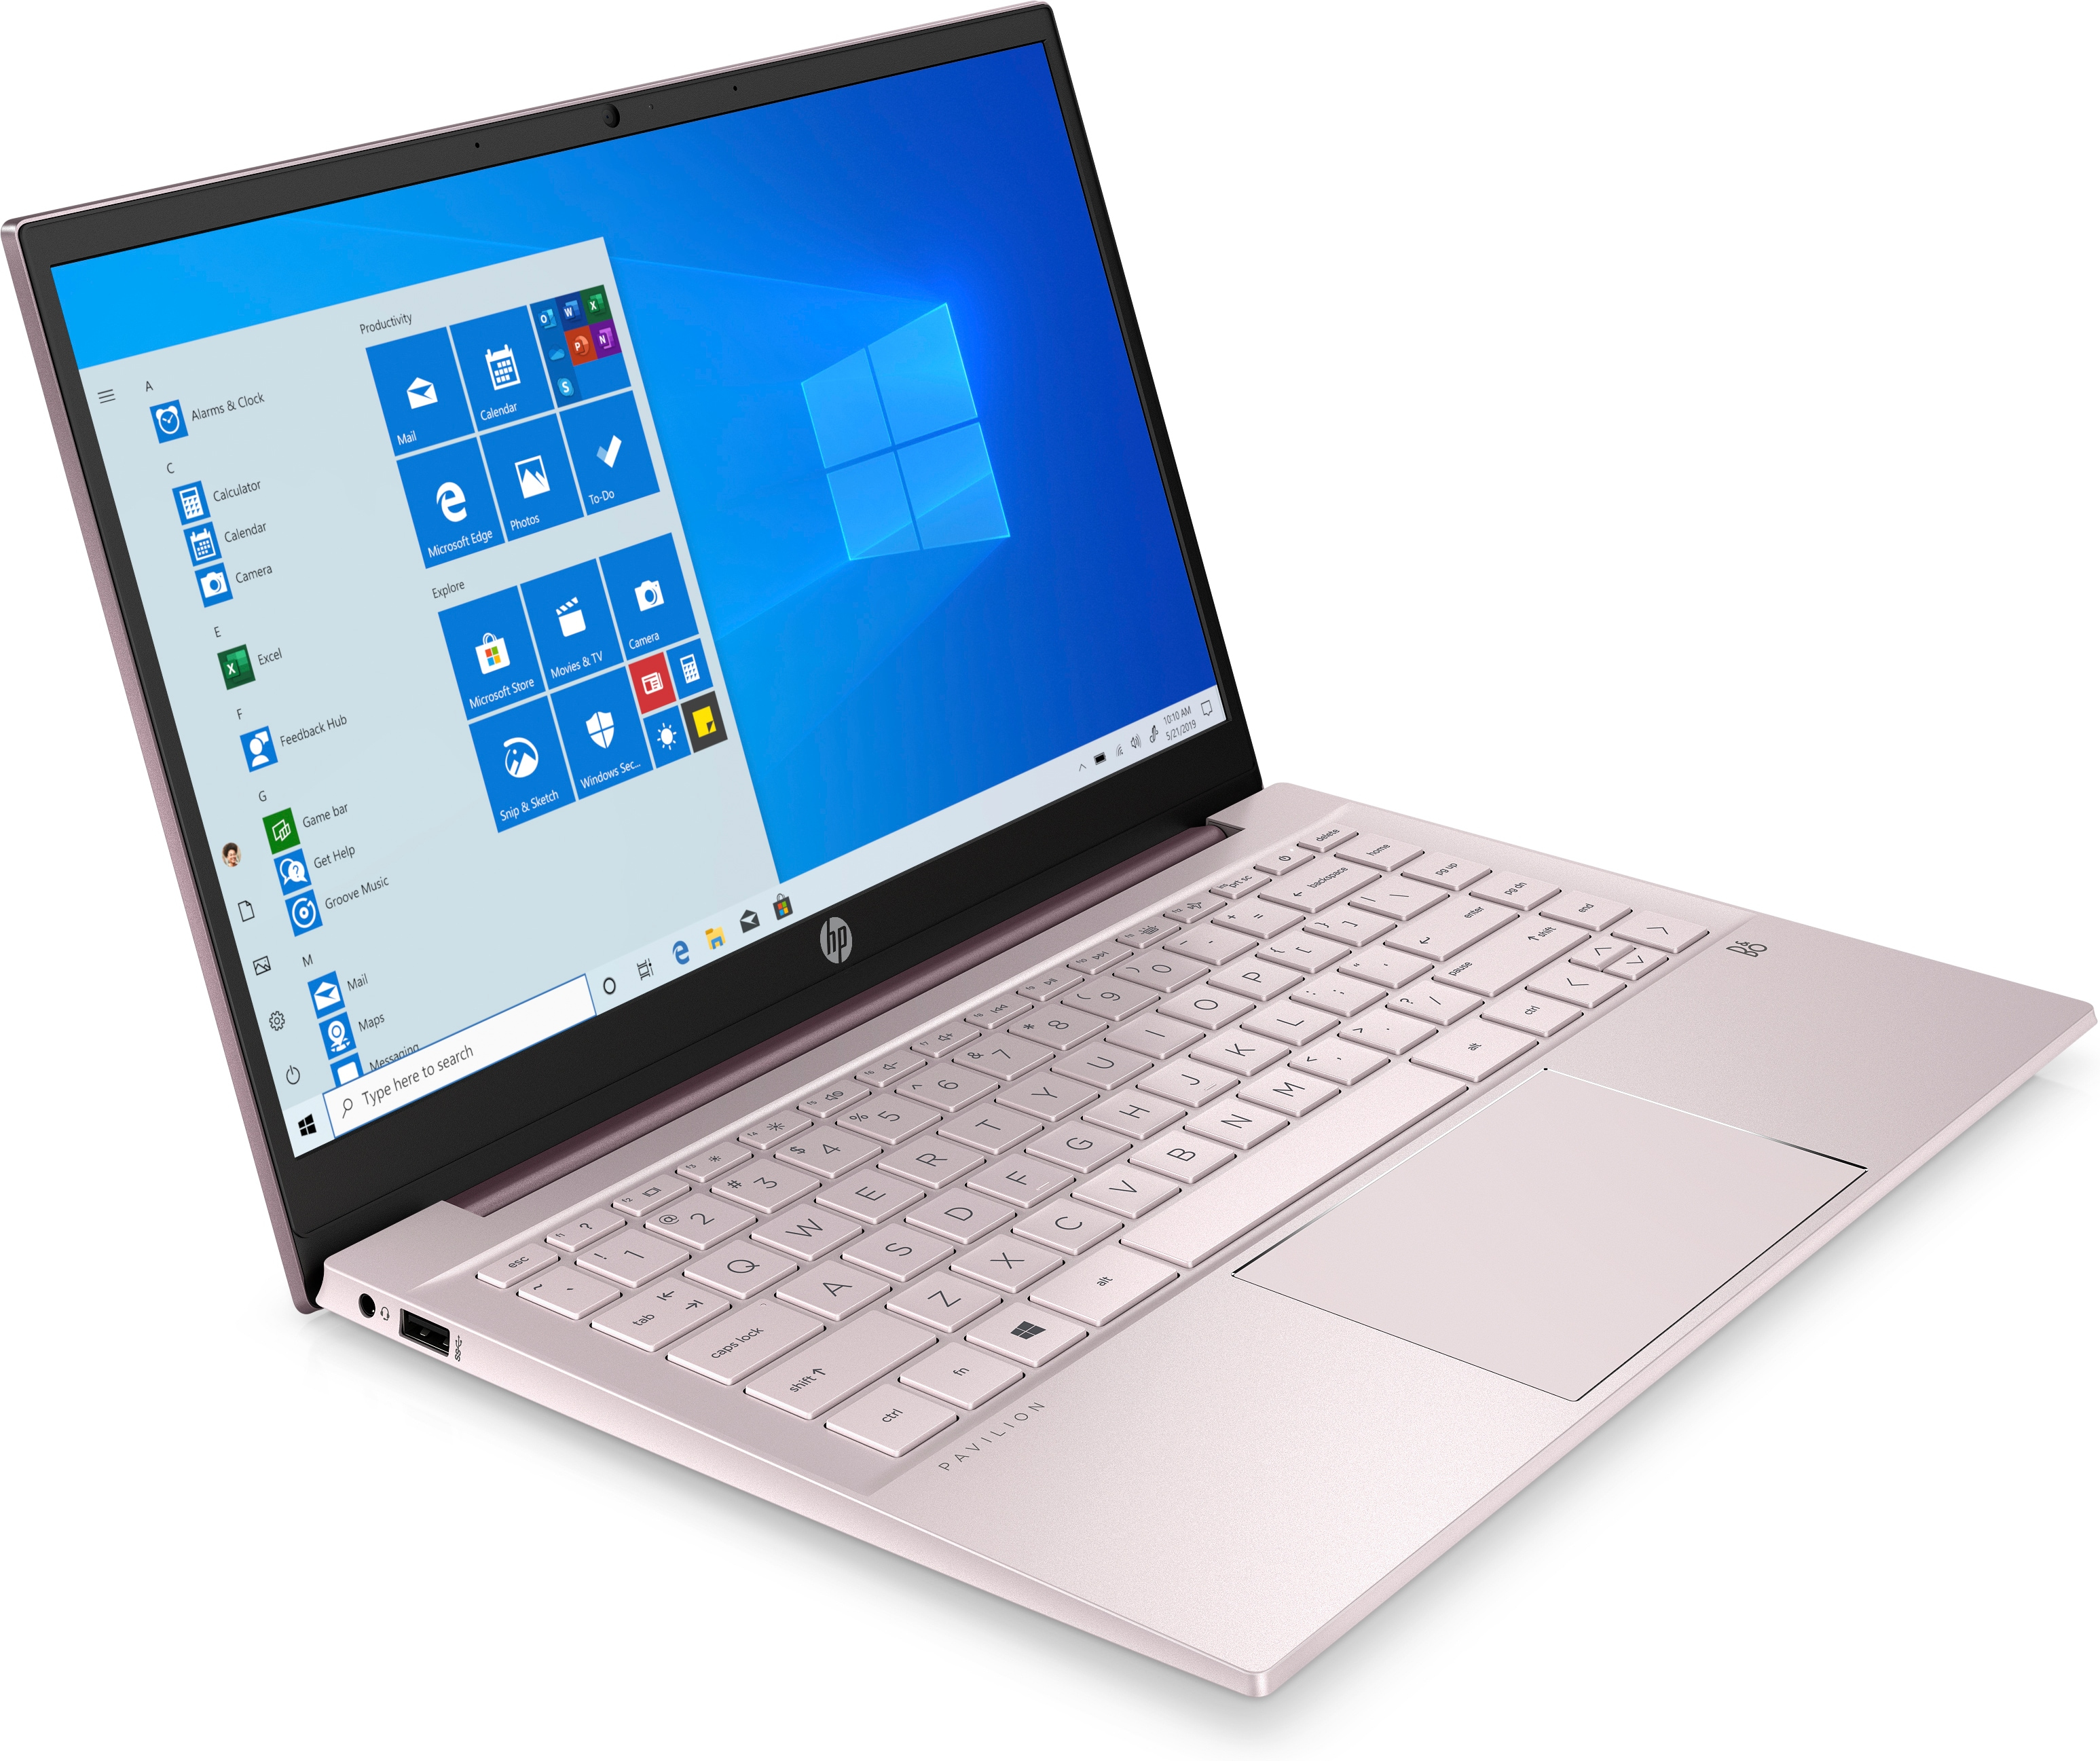 """HP Pavilion 14-dv0249nw i5-1135G7 14""""FHD AG 250nit IPS 8GB_3200MHz SSD512 IrisXe WiFi6 BT5 B&O BLK ALU 43Wh Win10 2Y Natural Silver1"""